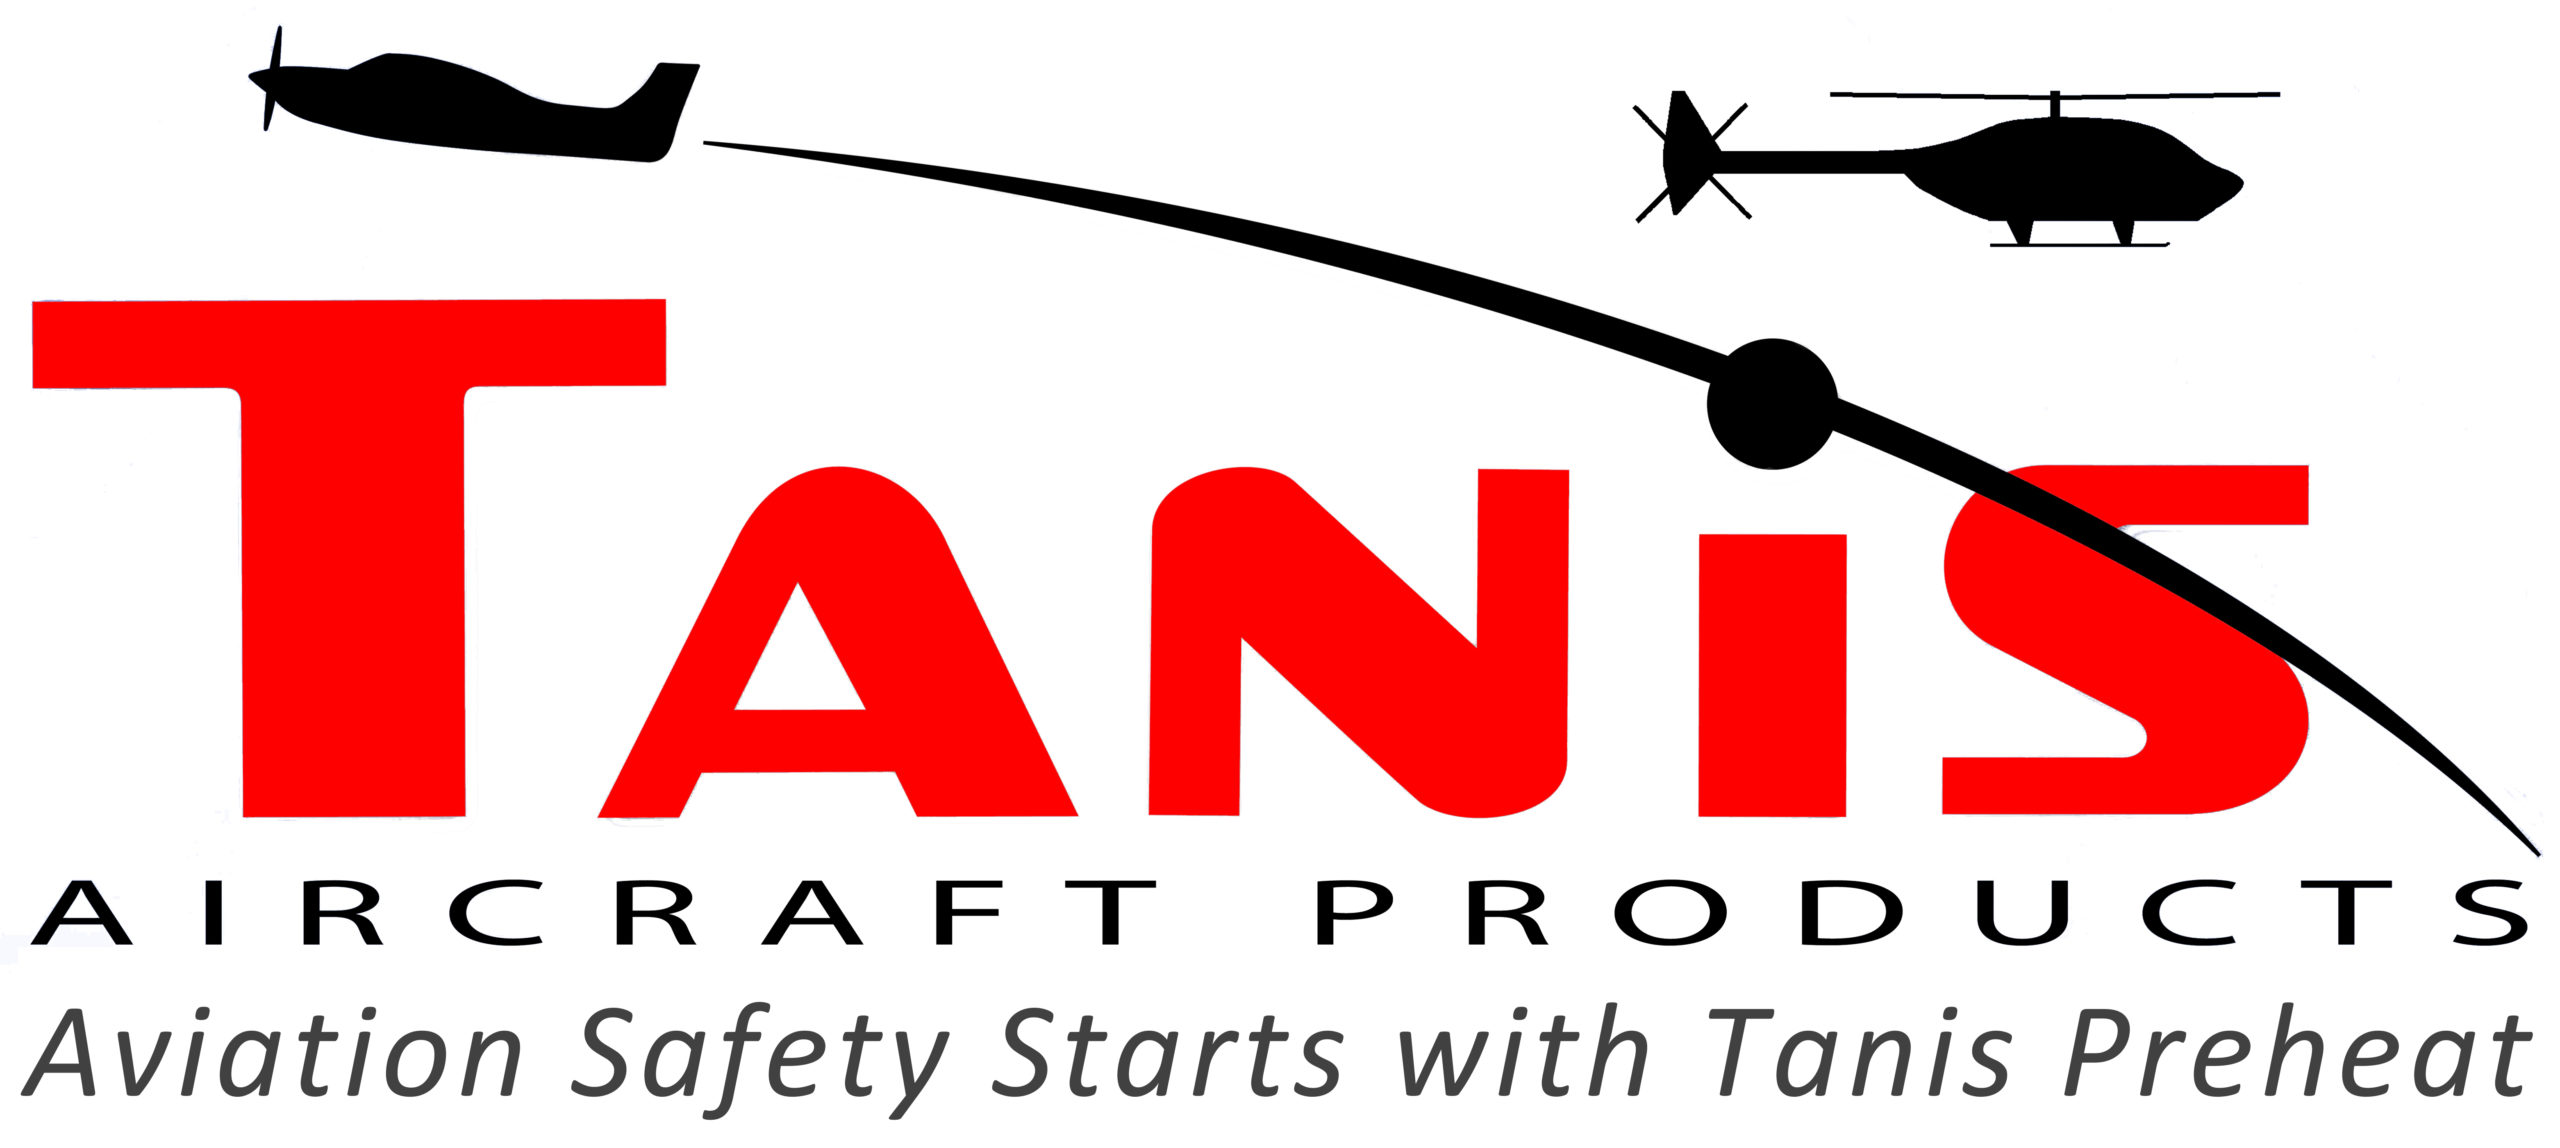 Tanis Aircraft Products Logo